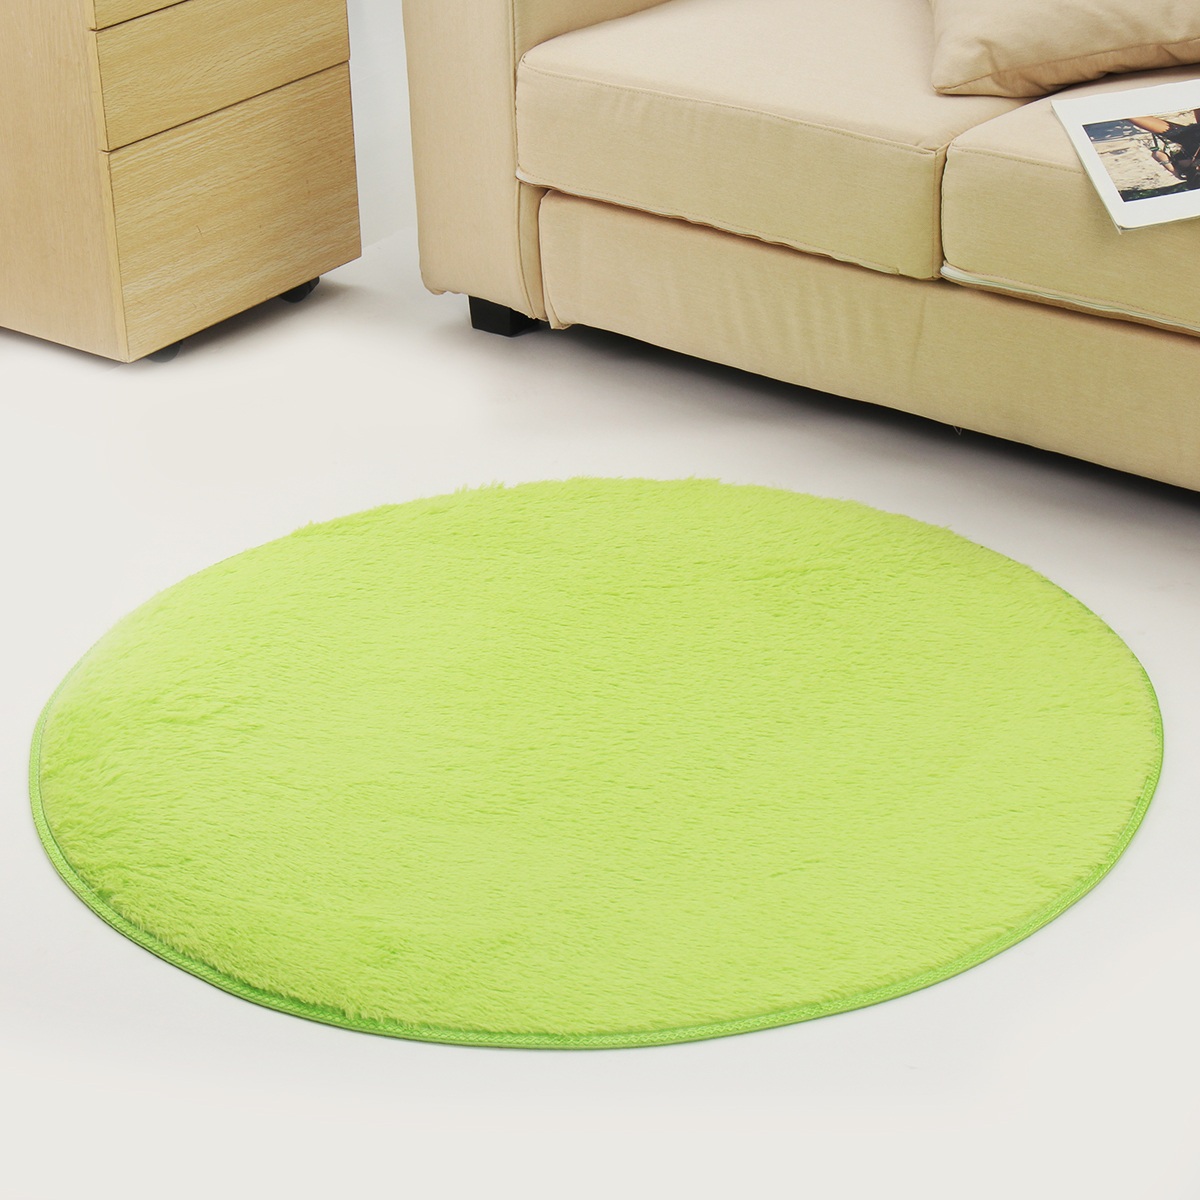 ... 80x120cm Source · Home Shaggy Anti Skid Carpets Rugs Floor Matcover 80x120cmgreen Page 4 JPG